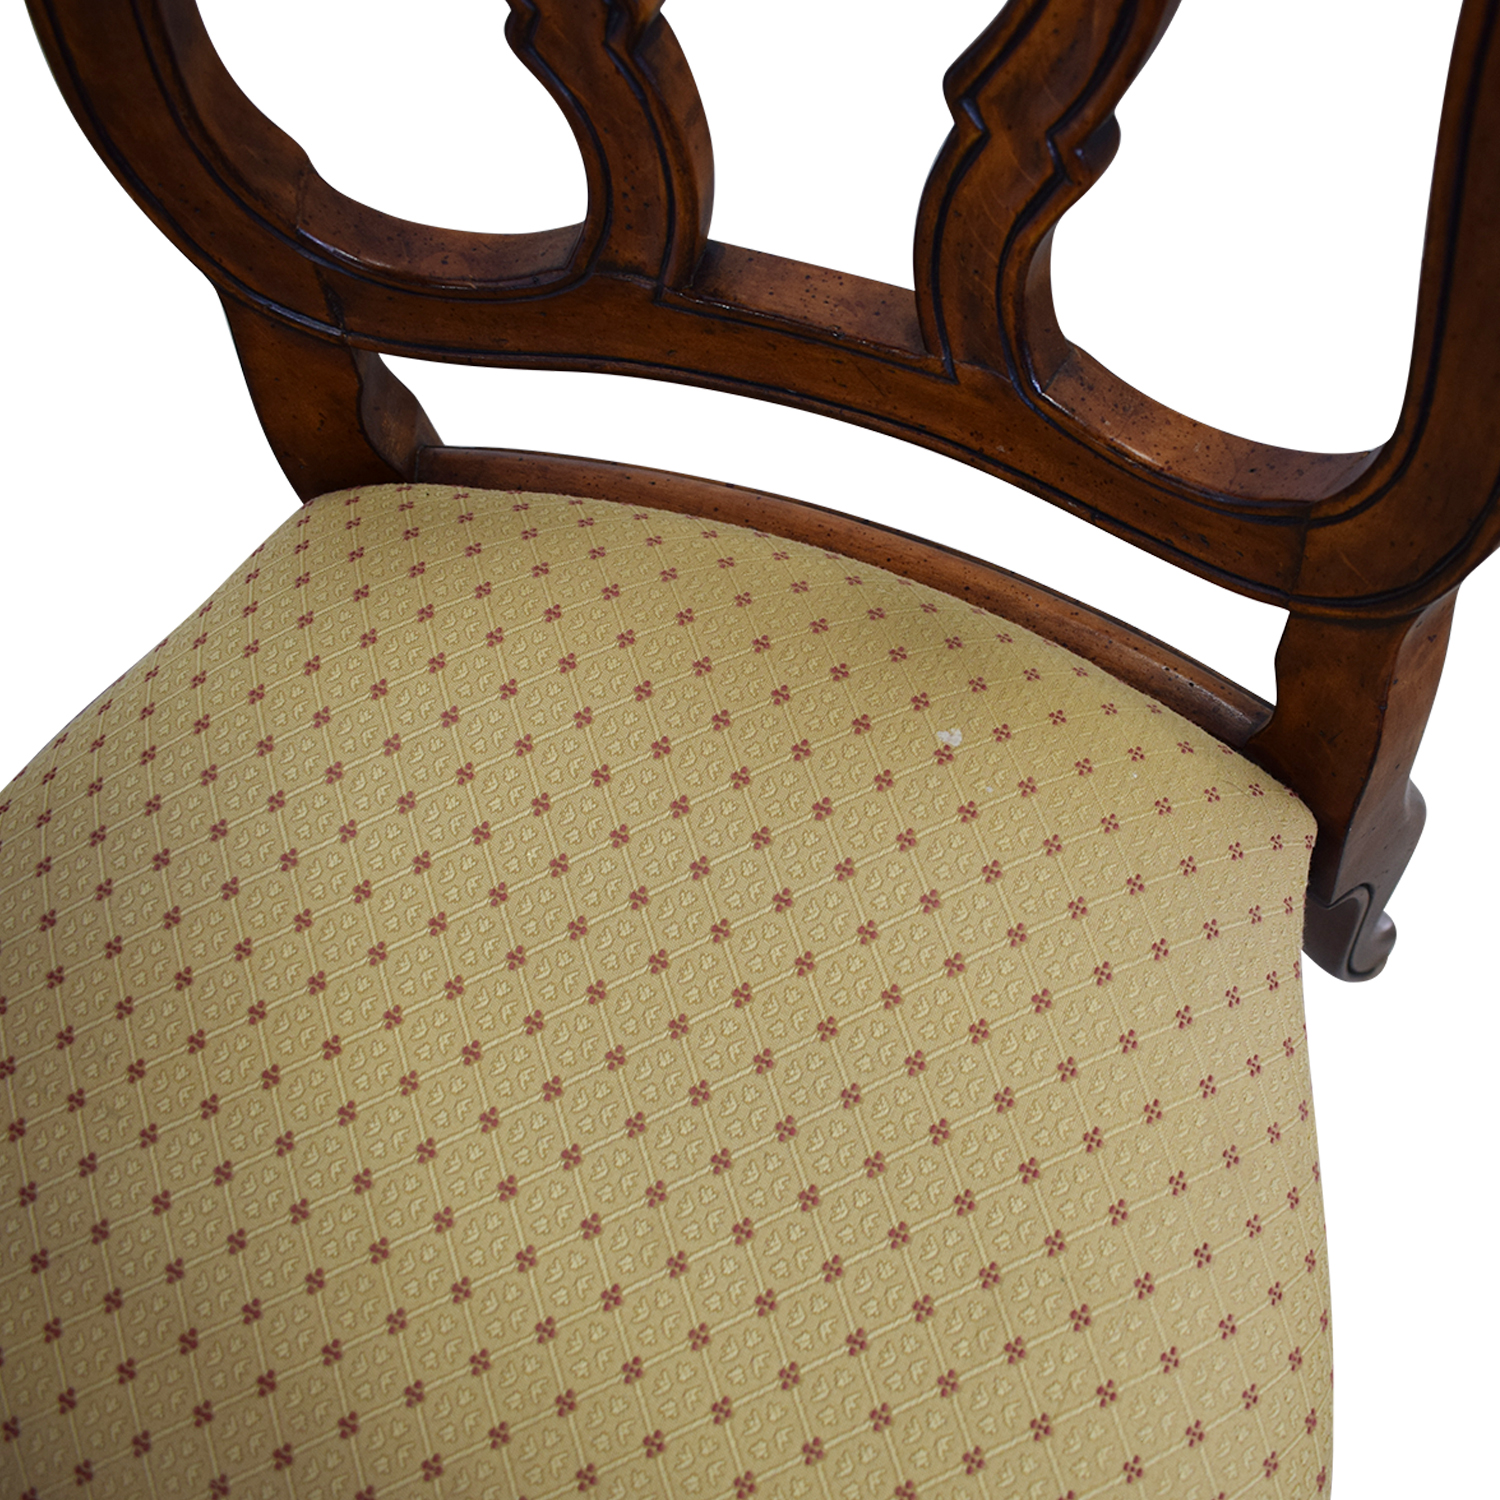 Ethan Allen Ethan Allen Dining Side Chairs used